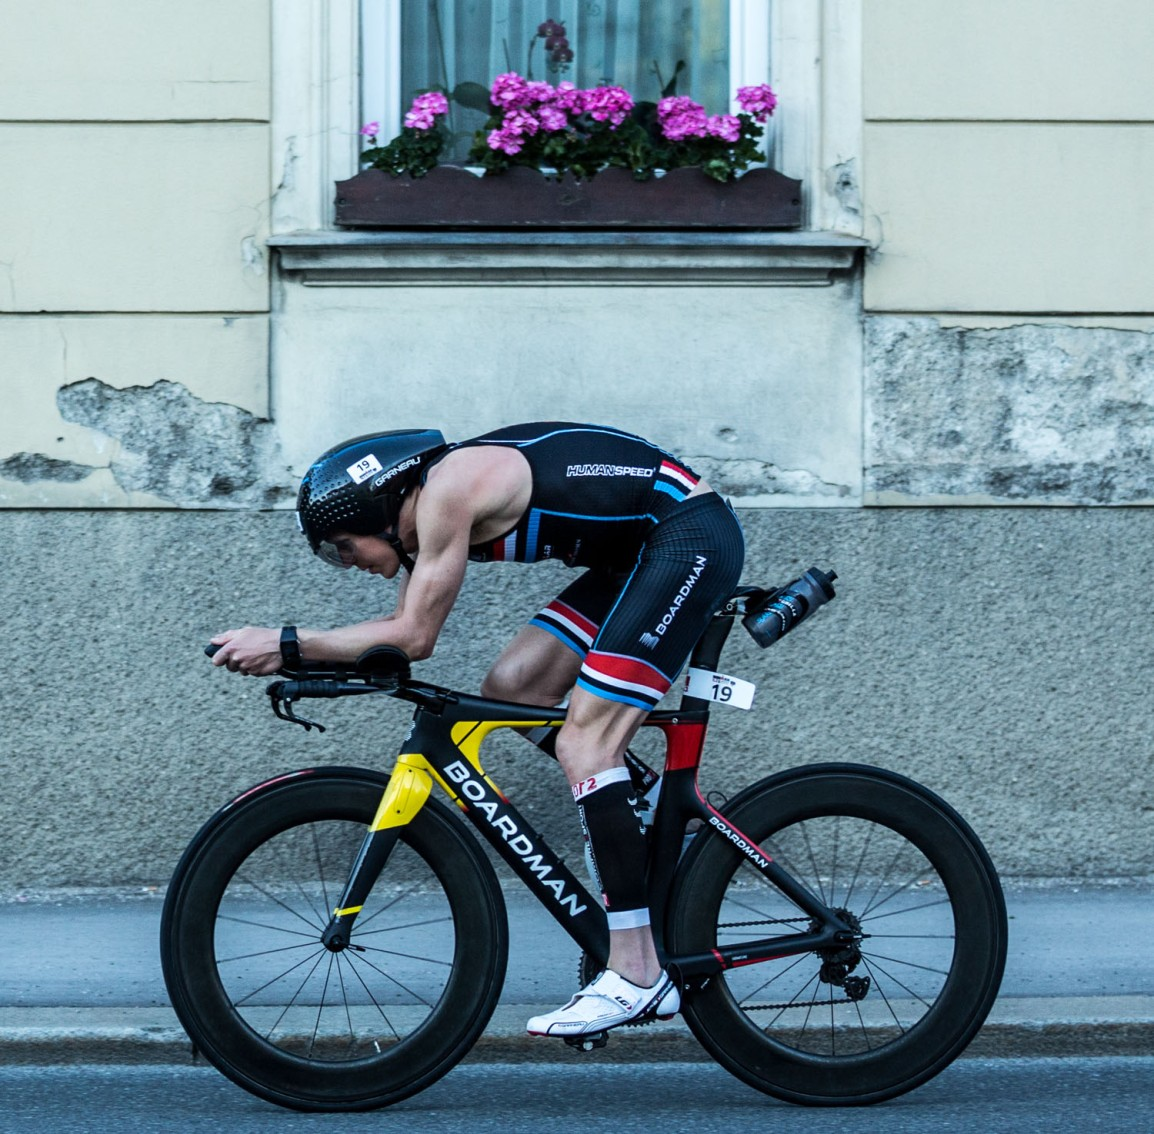 Tri/TT-bike vs Road bike – what should you choose?